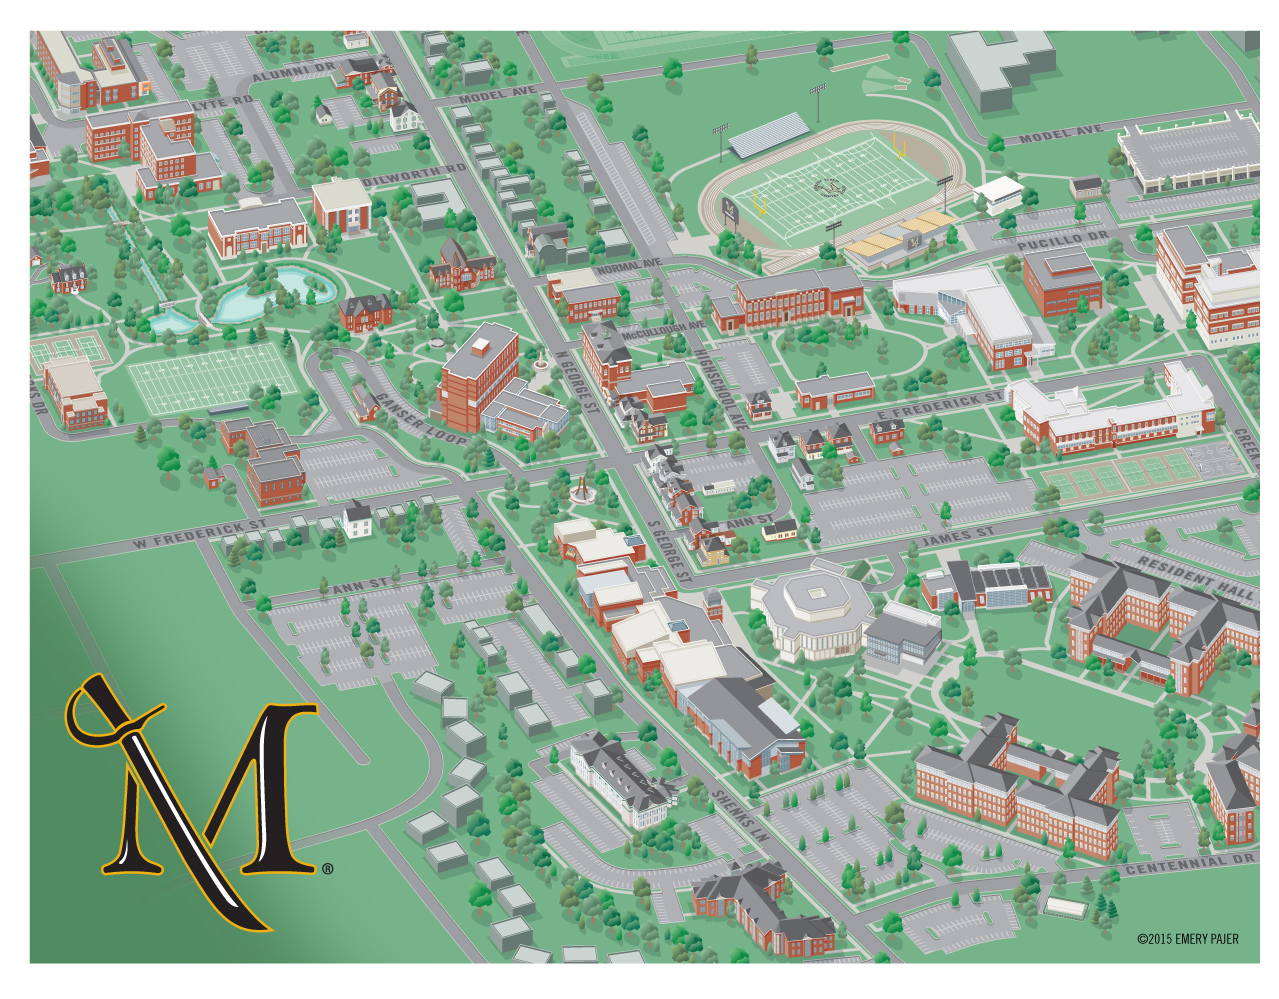 college campus map illustration millersville university. city  college campus map illustration  design